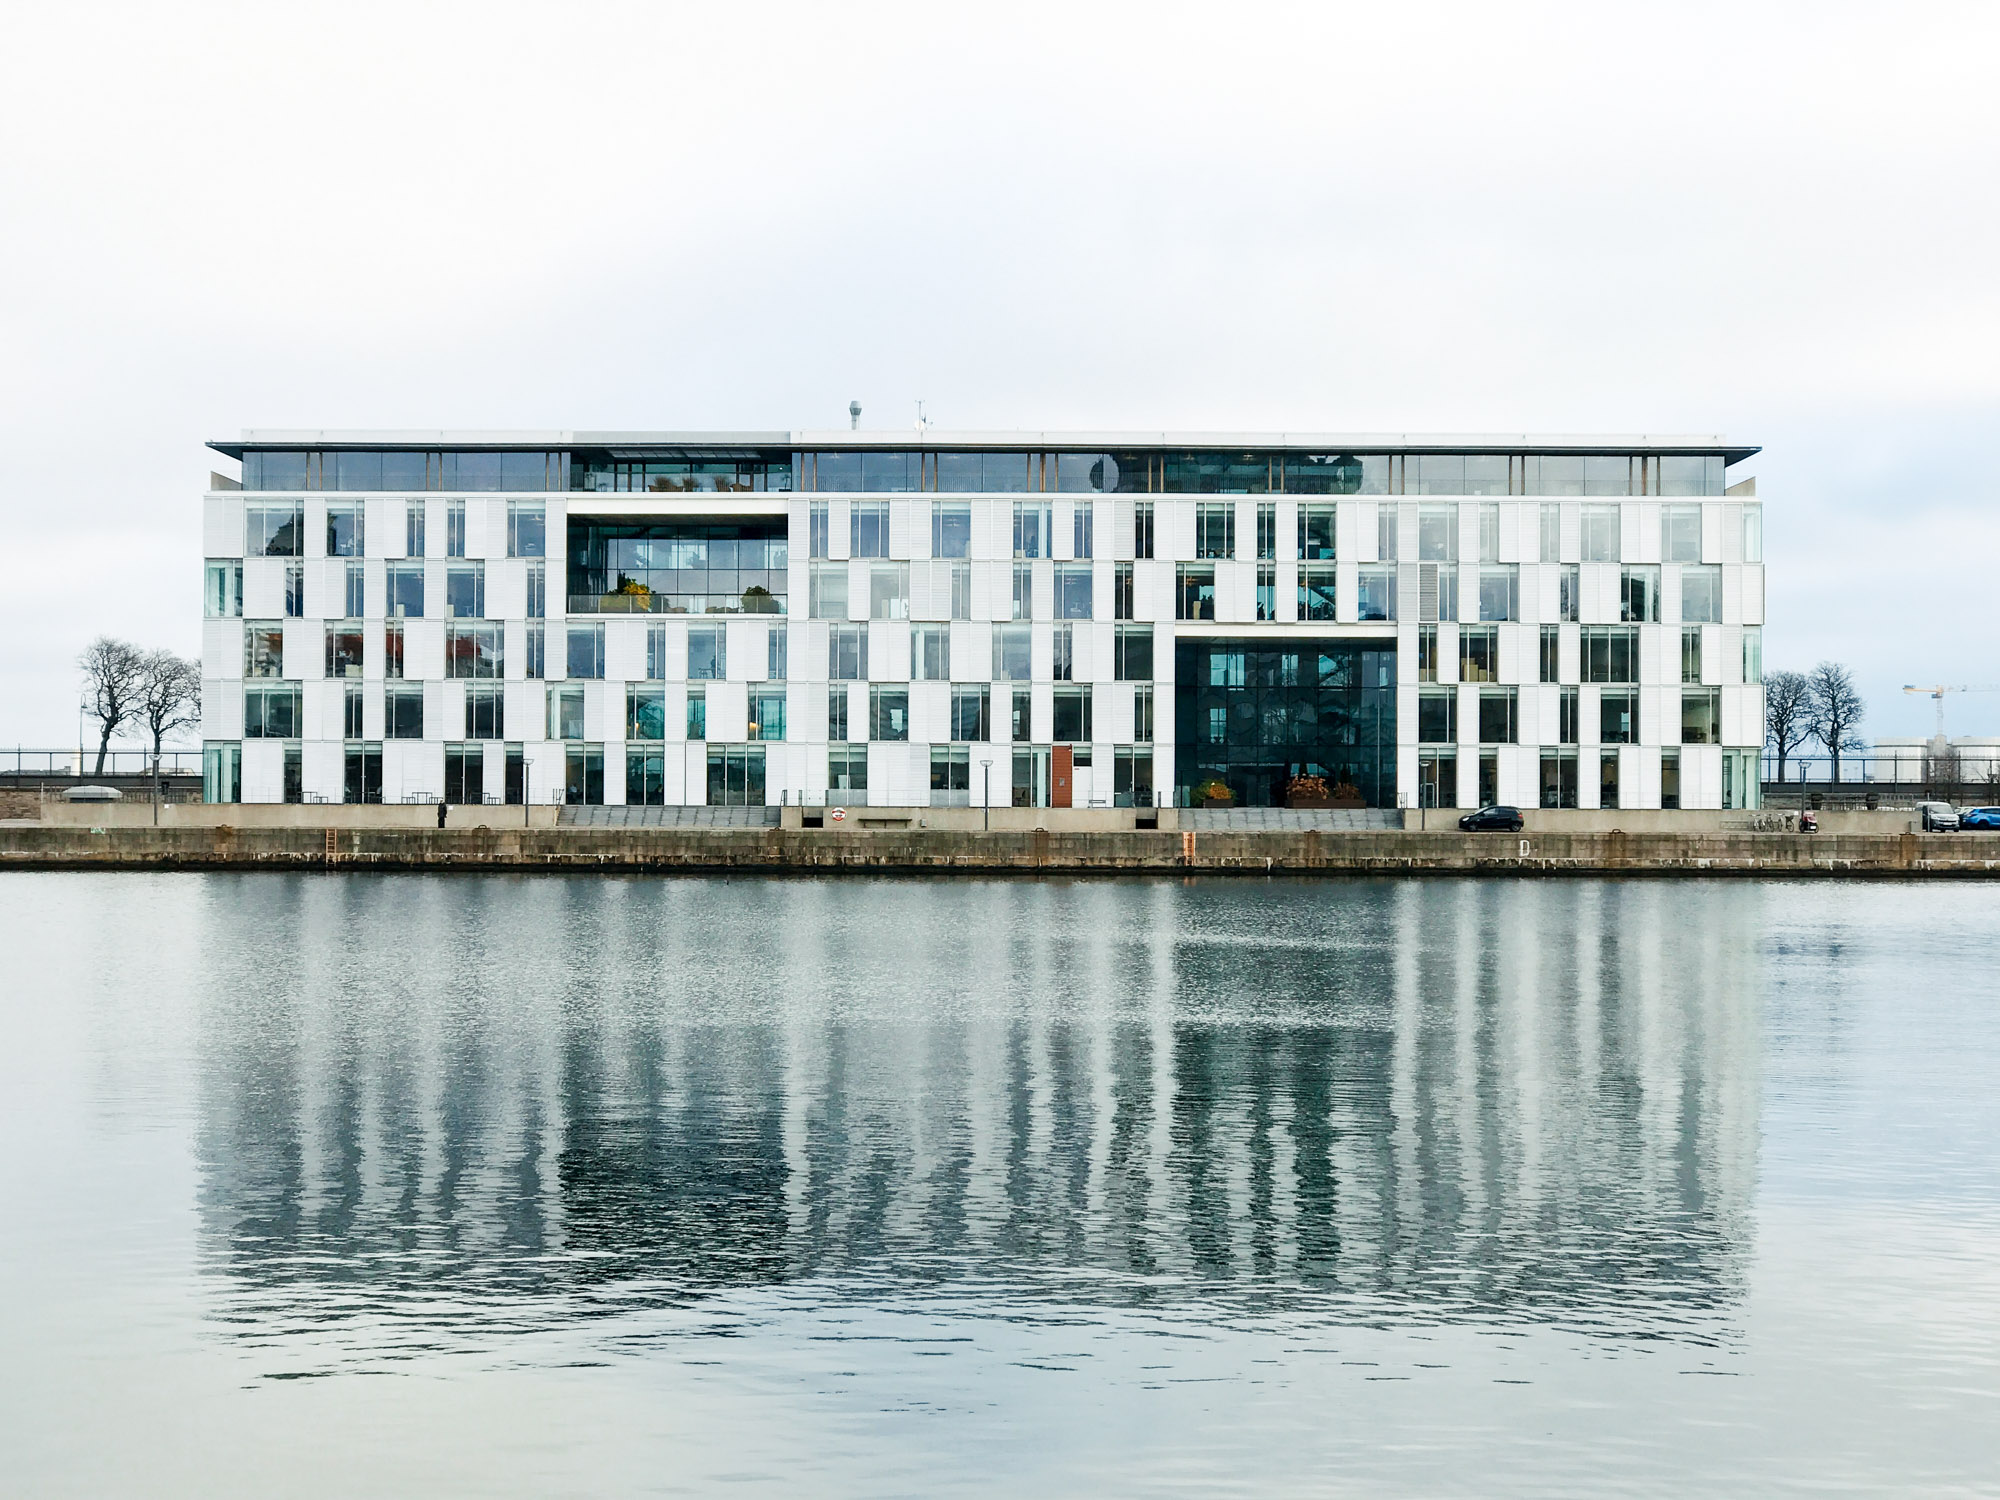 Jeff On The Road - Travel - Things to do in Copenhagen - Nordhavn - All photos are under Copyright © 2017 Jeff Frenette Photography / dezjeff. To use the photos, please contact me at dezjeff@me.com.